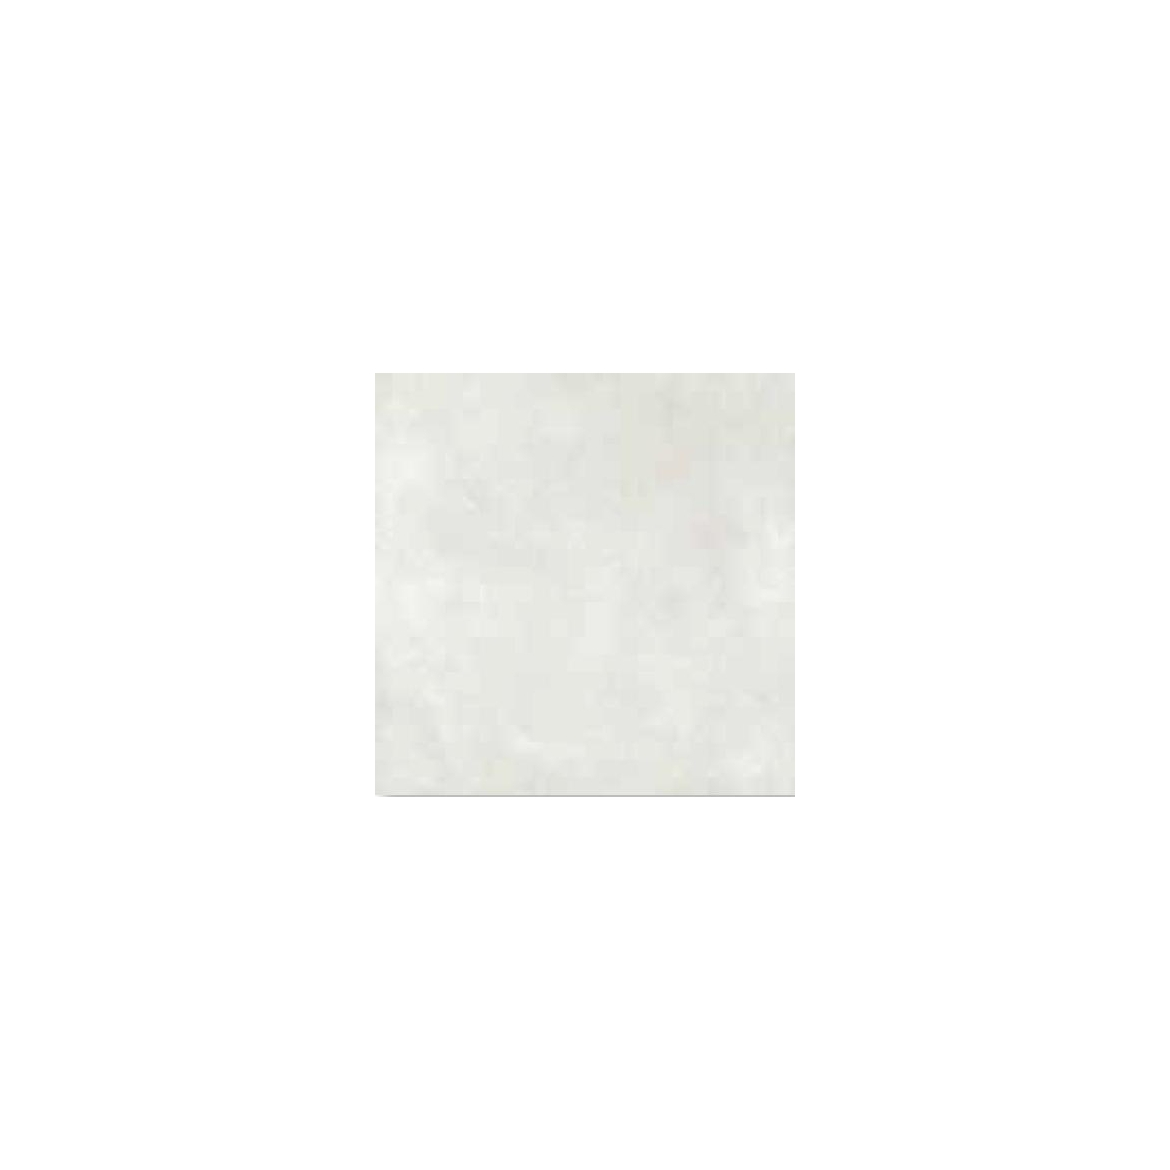 https://cerdesign.pl/448-large_default/p3158-emigres-baltico-gris-60x60.jpg